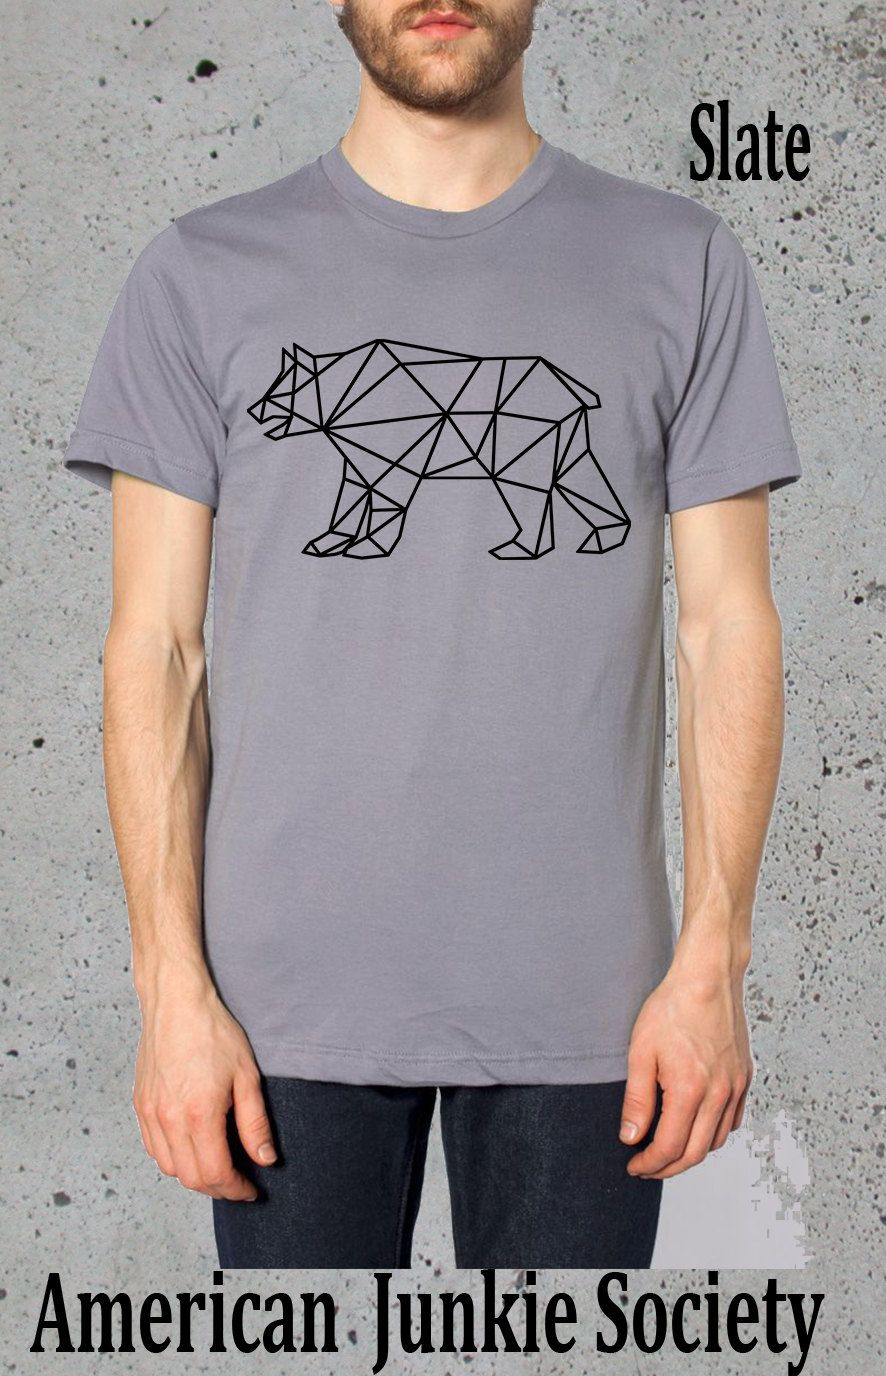 Mens geometric grizzly bear tshirthusband giftmens graphic tee geometric bear shirt grizzlies tshirtamerican apparelmens graphic tee guys t shirtboyfriend gift ideasmens shirts hipster shirt by americanjunkiesoc on publicscrutiny Gallery